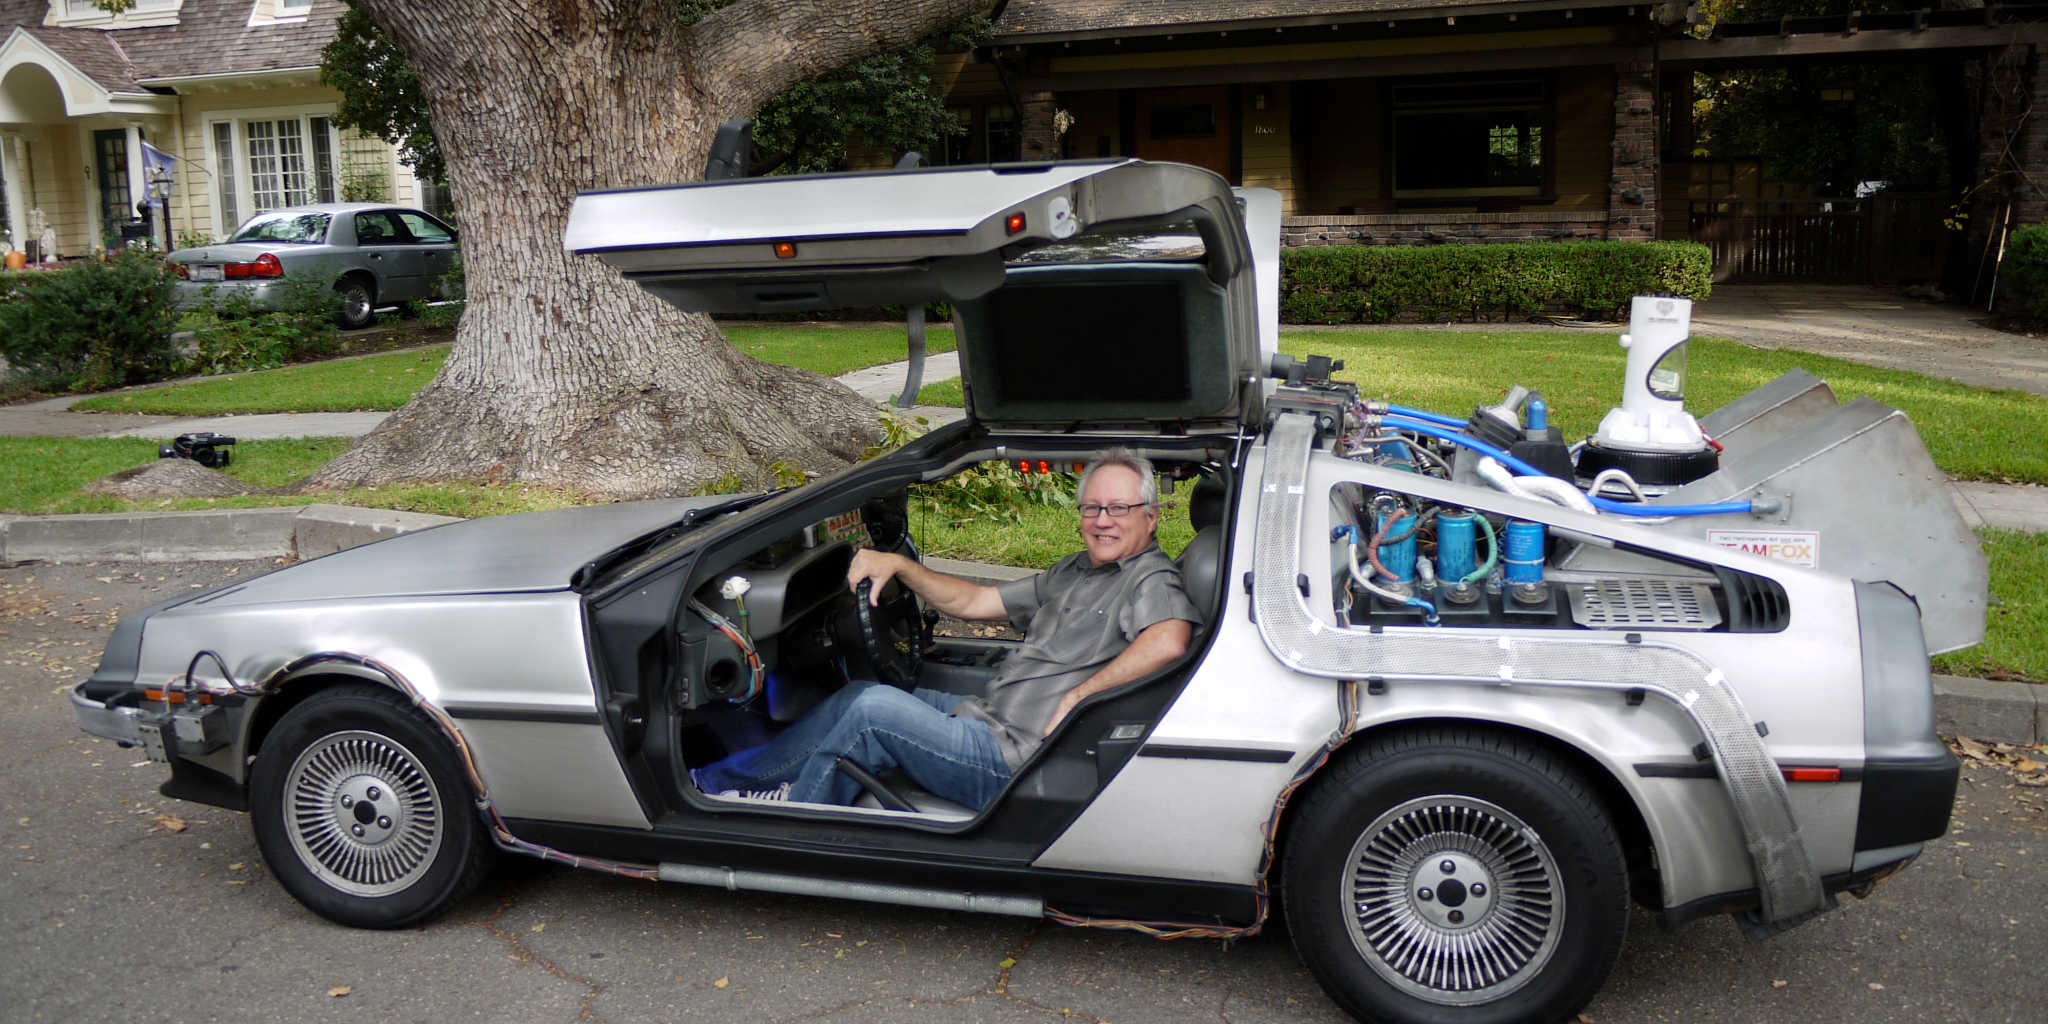 Filmmaker John McDonald siiting in front of the Peeping Tom tree in a replica of the Back to the Future DeLorean time machine